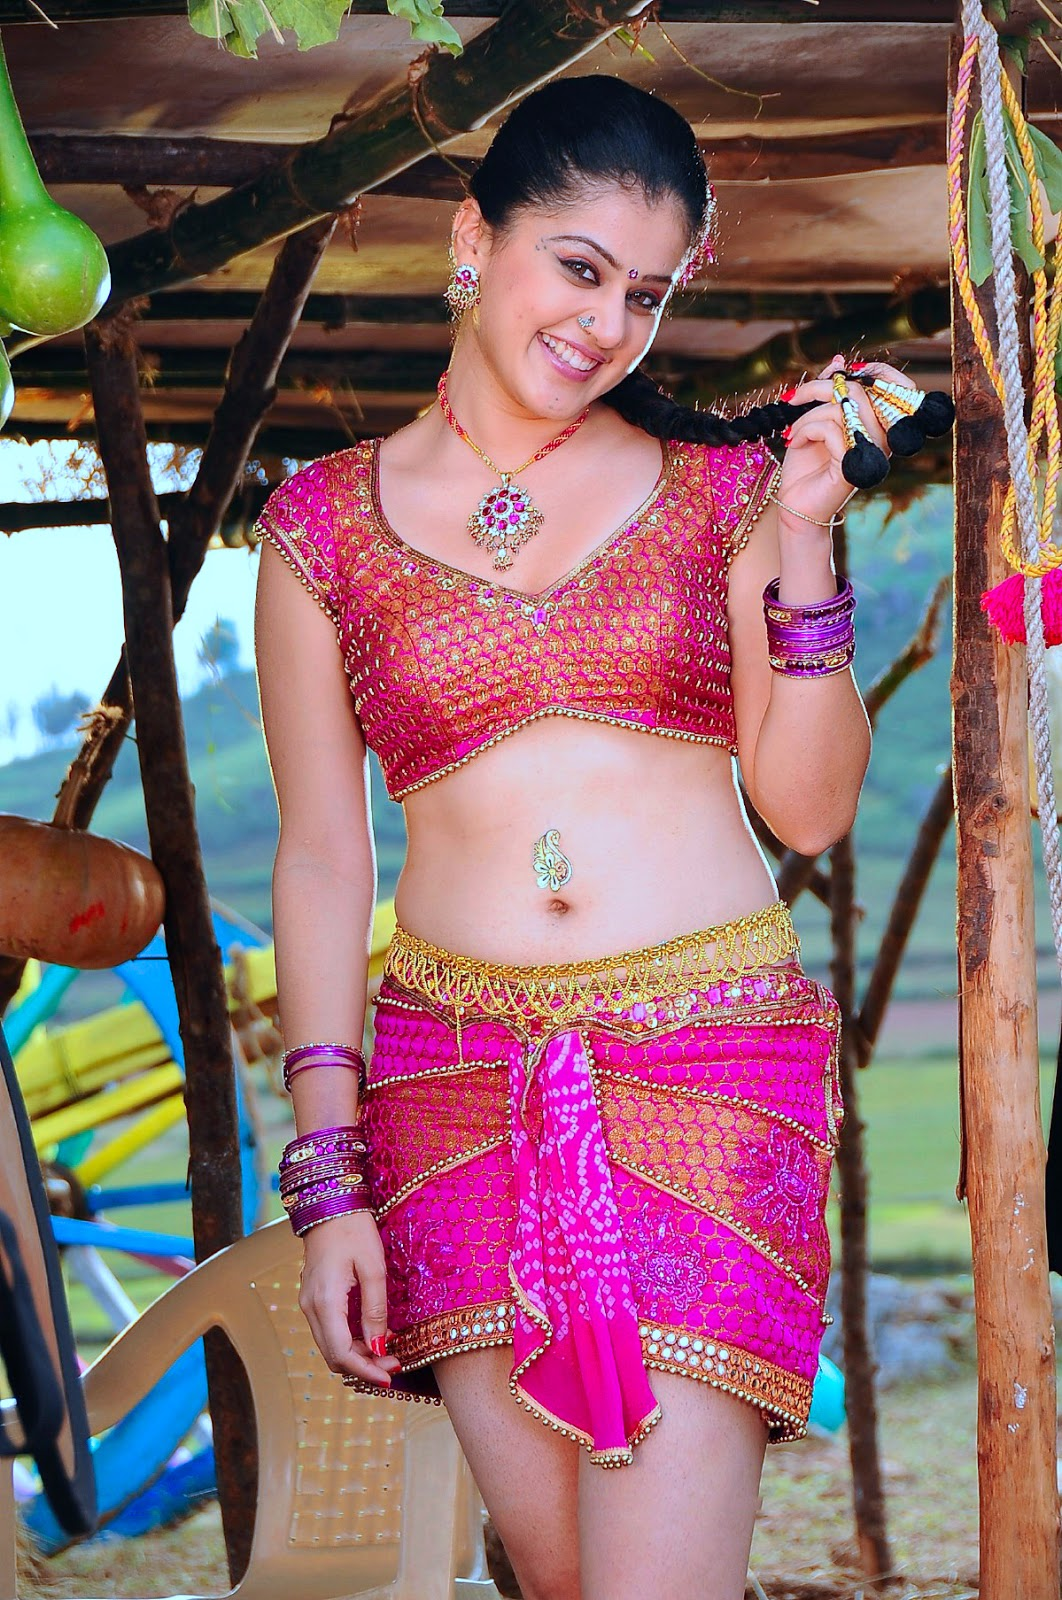 Tapsee Pannu's Incredible Pictures Hot Getup Navel and Milky Thighs